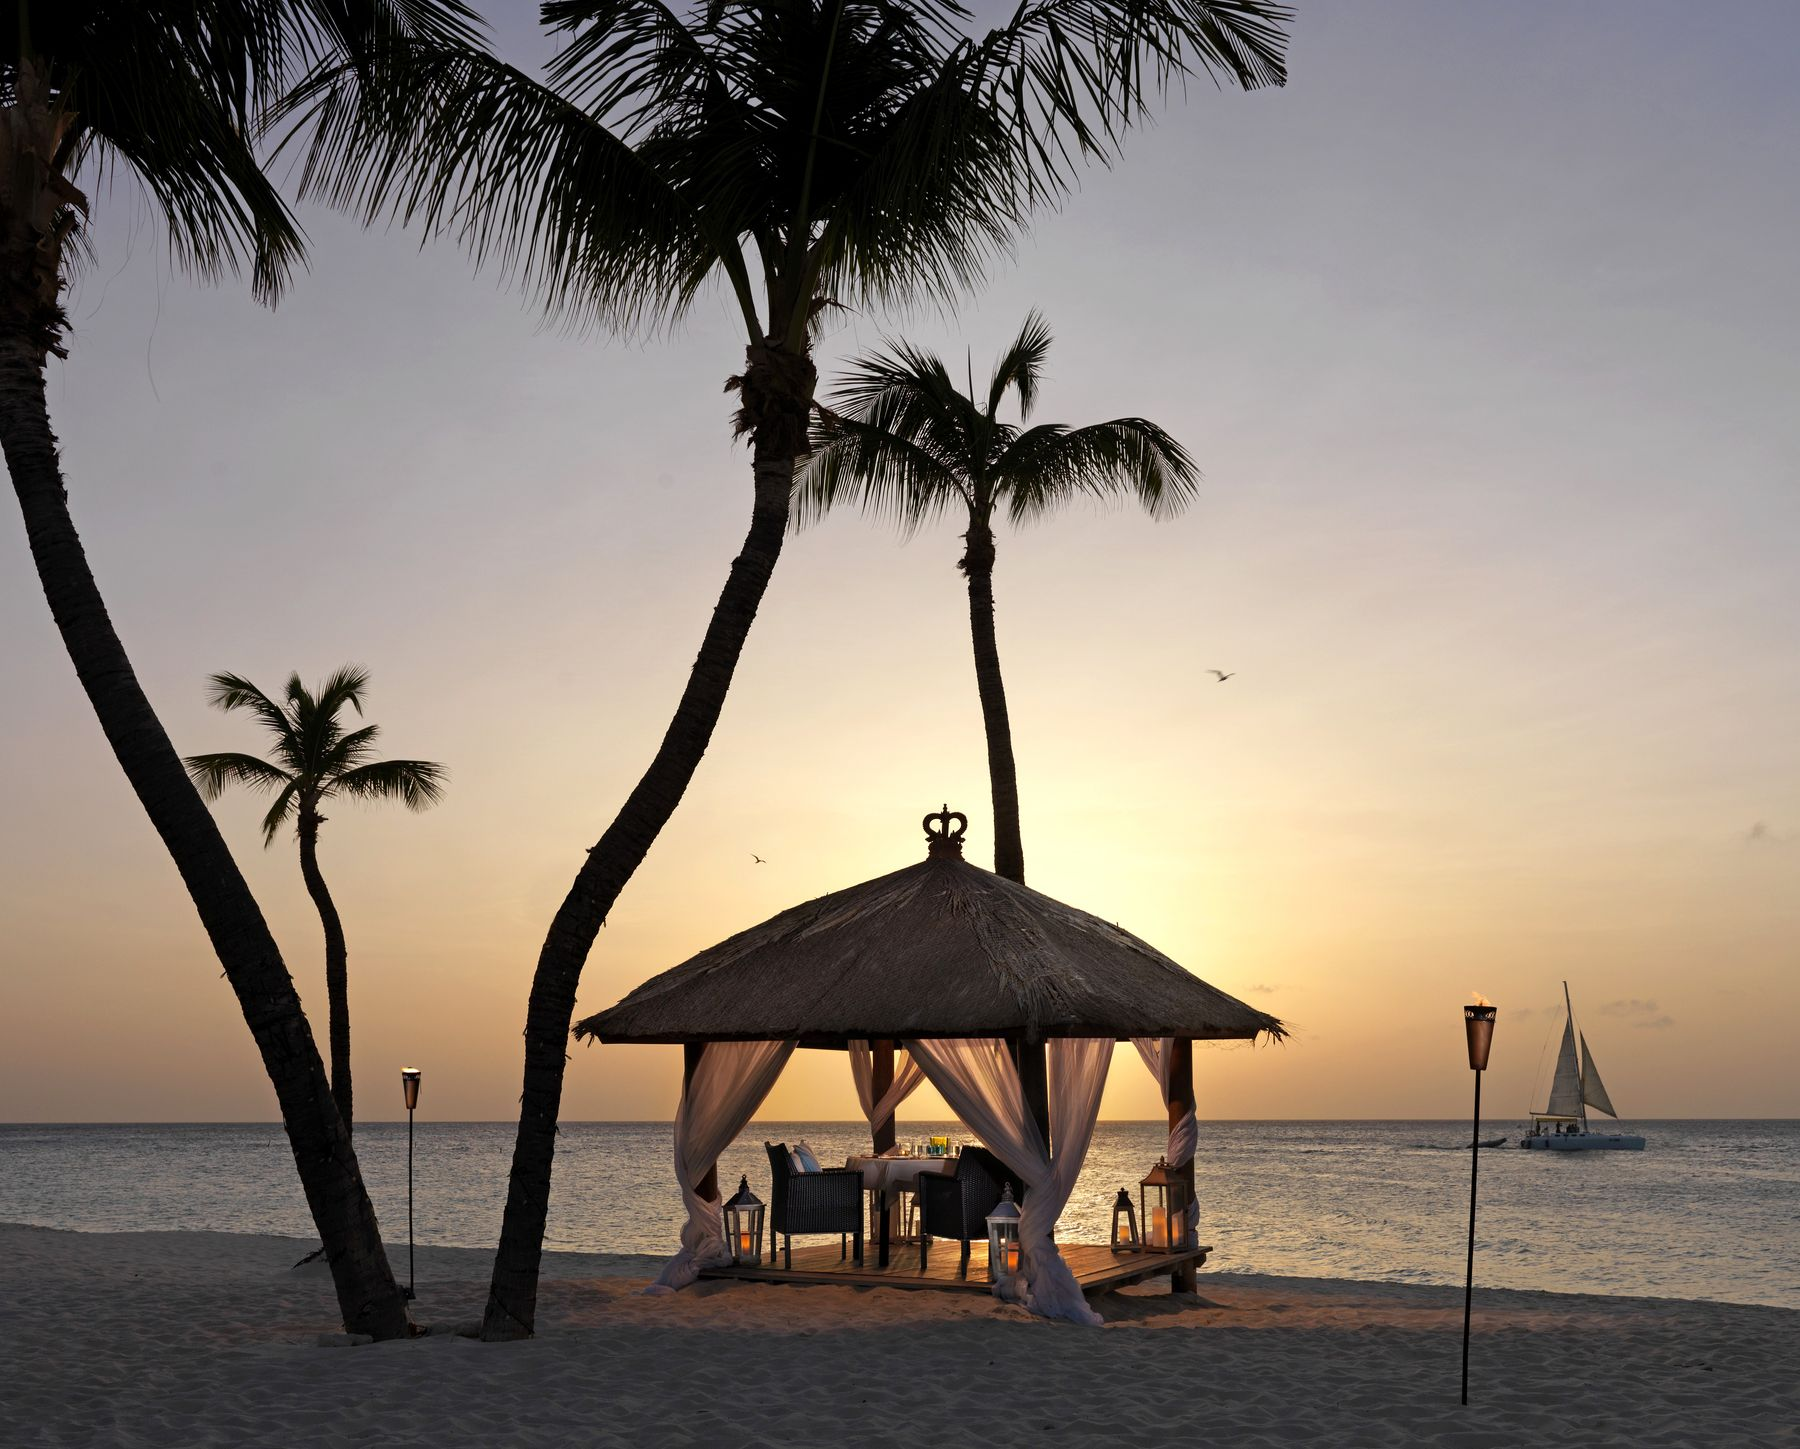 private dining canopy at the beach by sunset